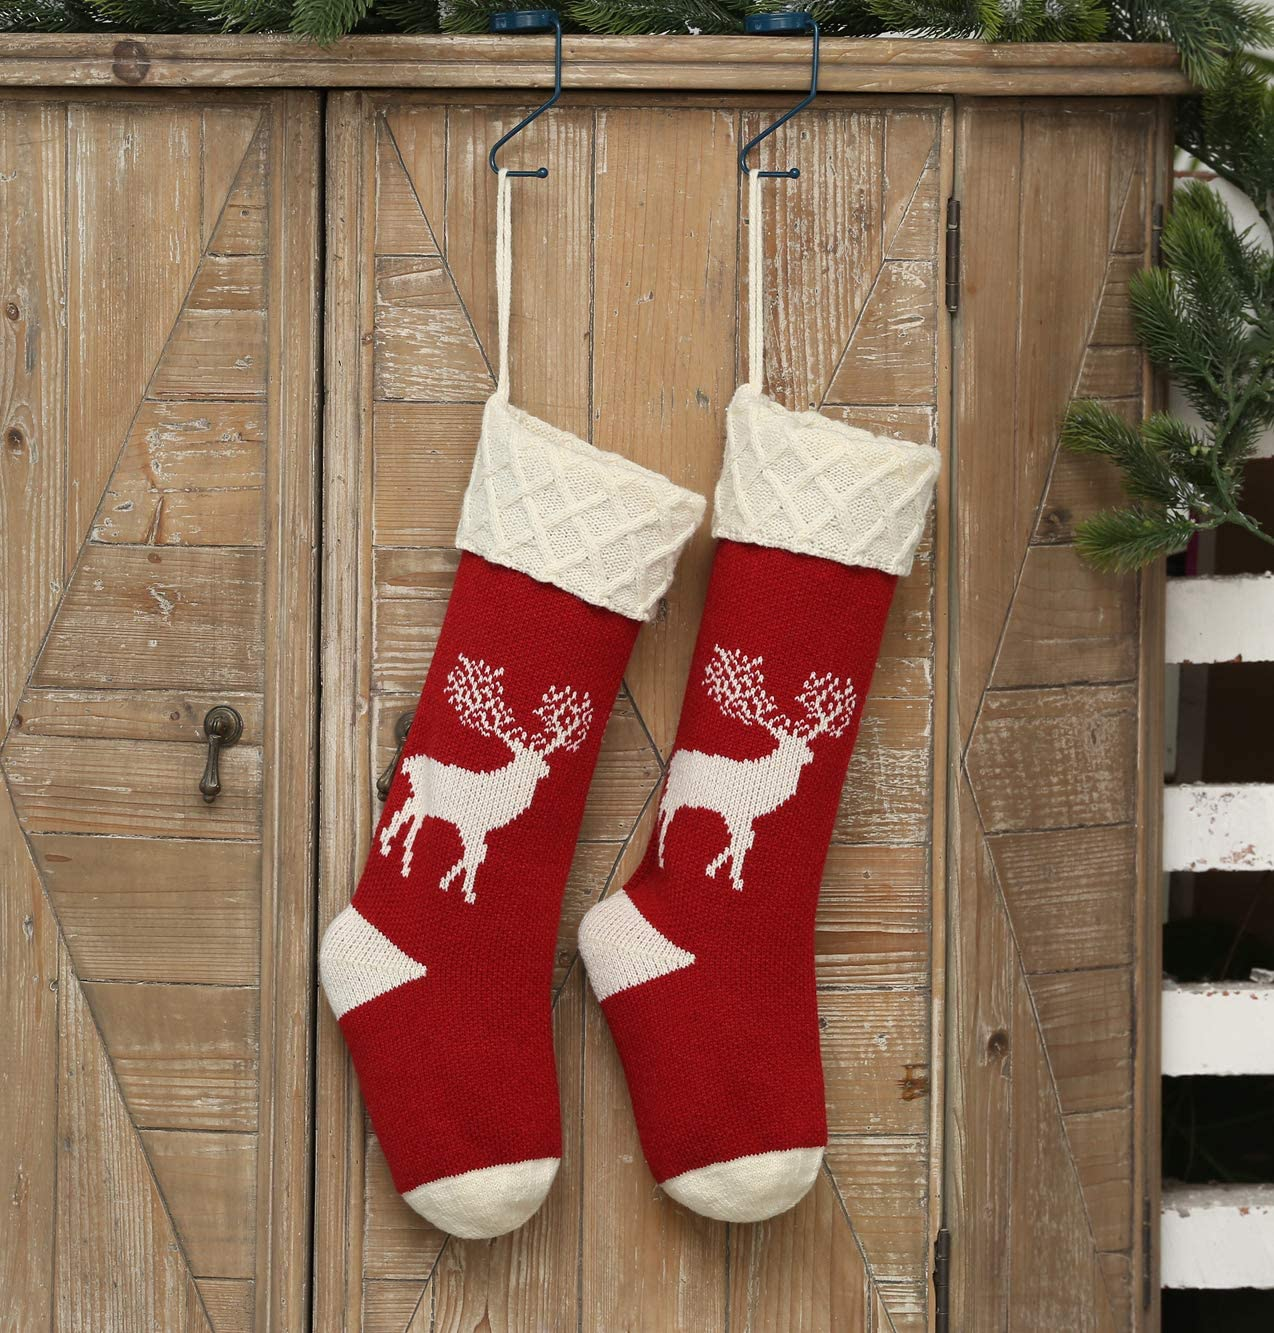 Christmas Stockings Knitted Reindeer Pattern Xmas Stockings Traditional Hanging Socks Ornament For Family Holiday Party Decorations